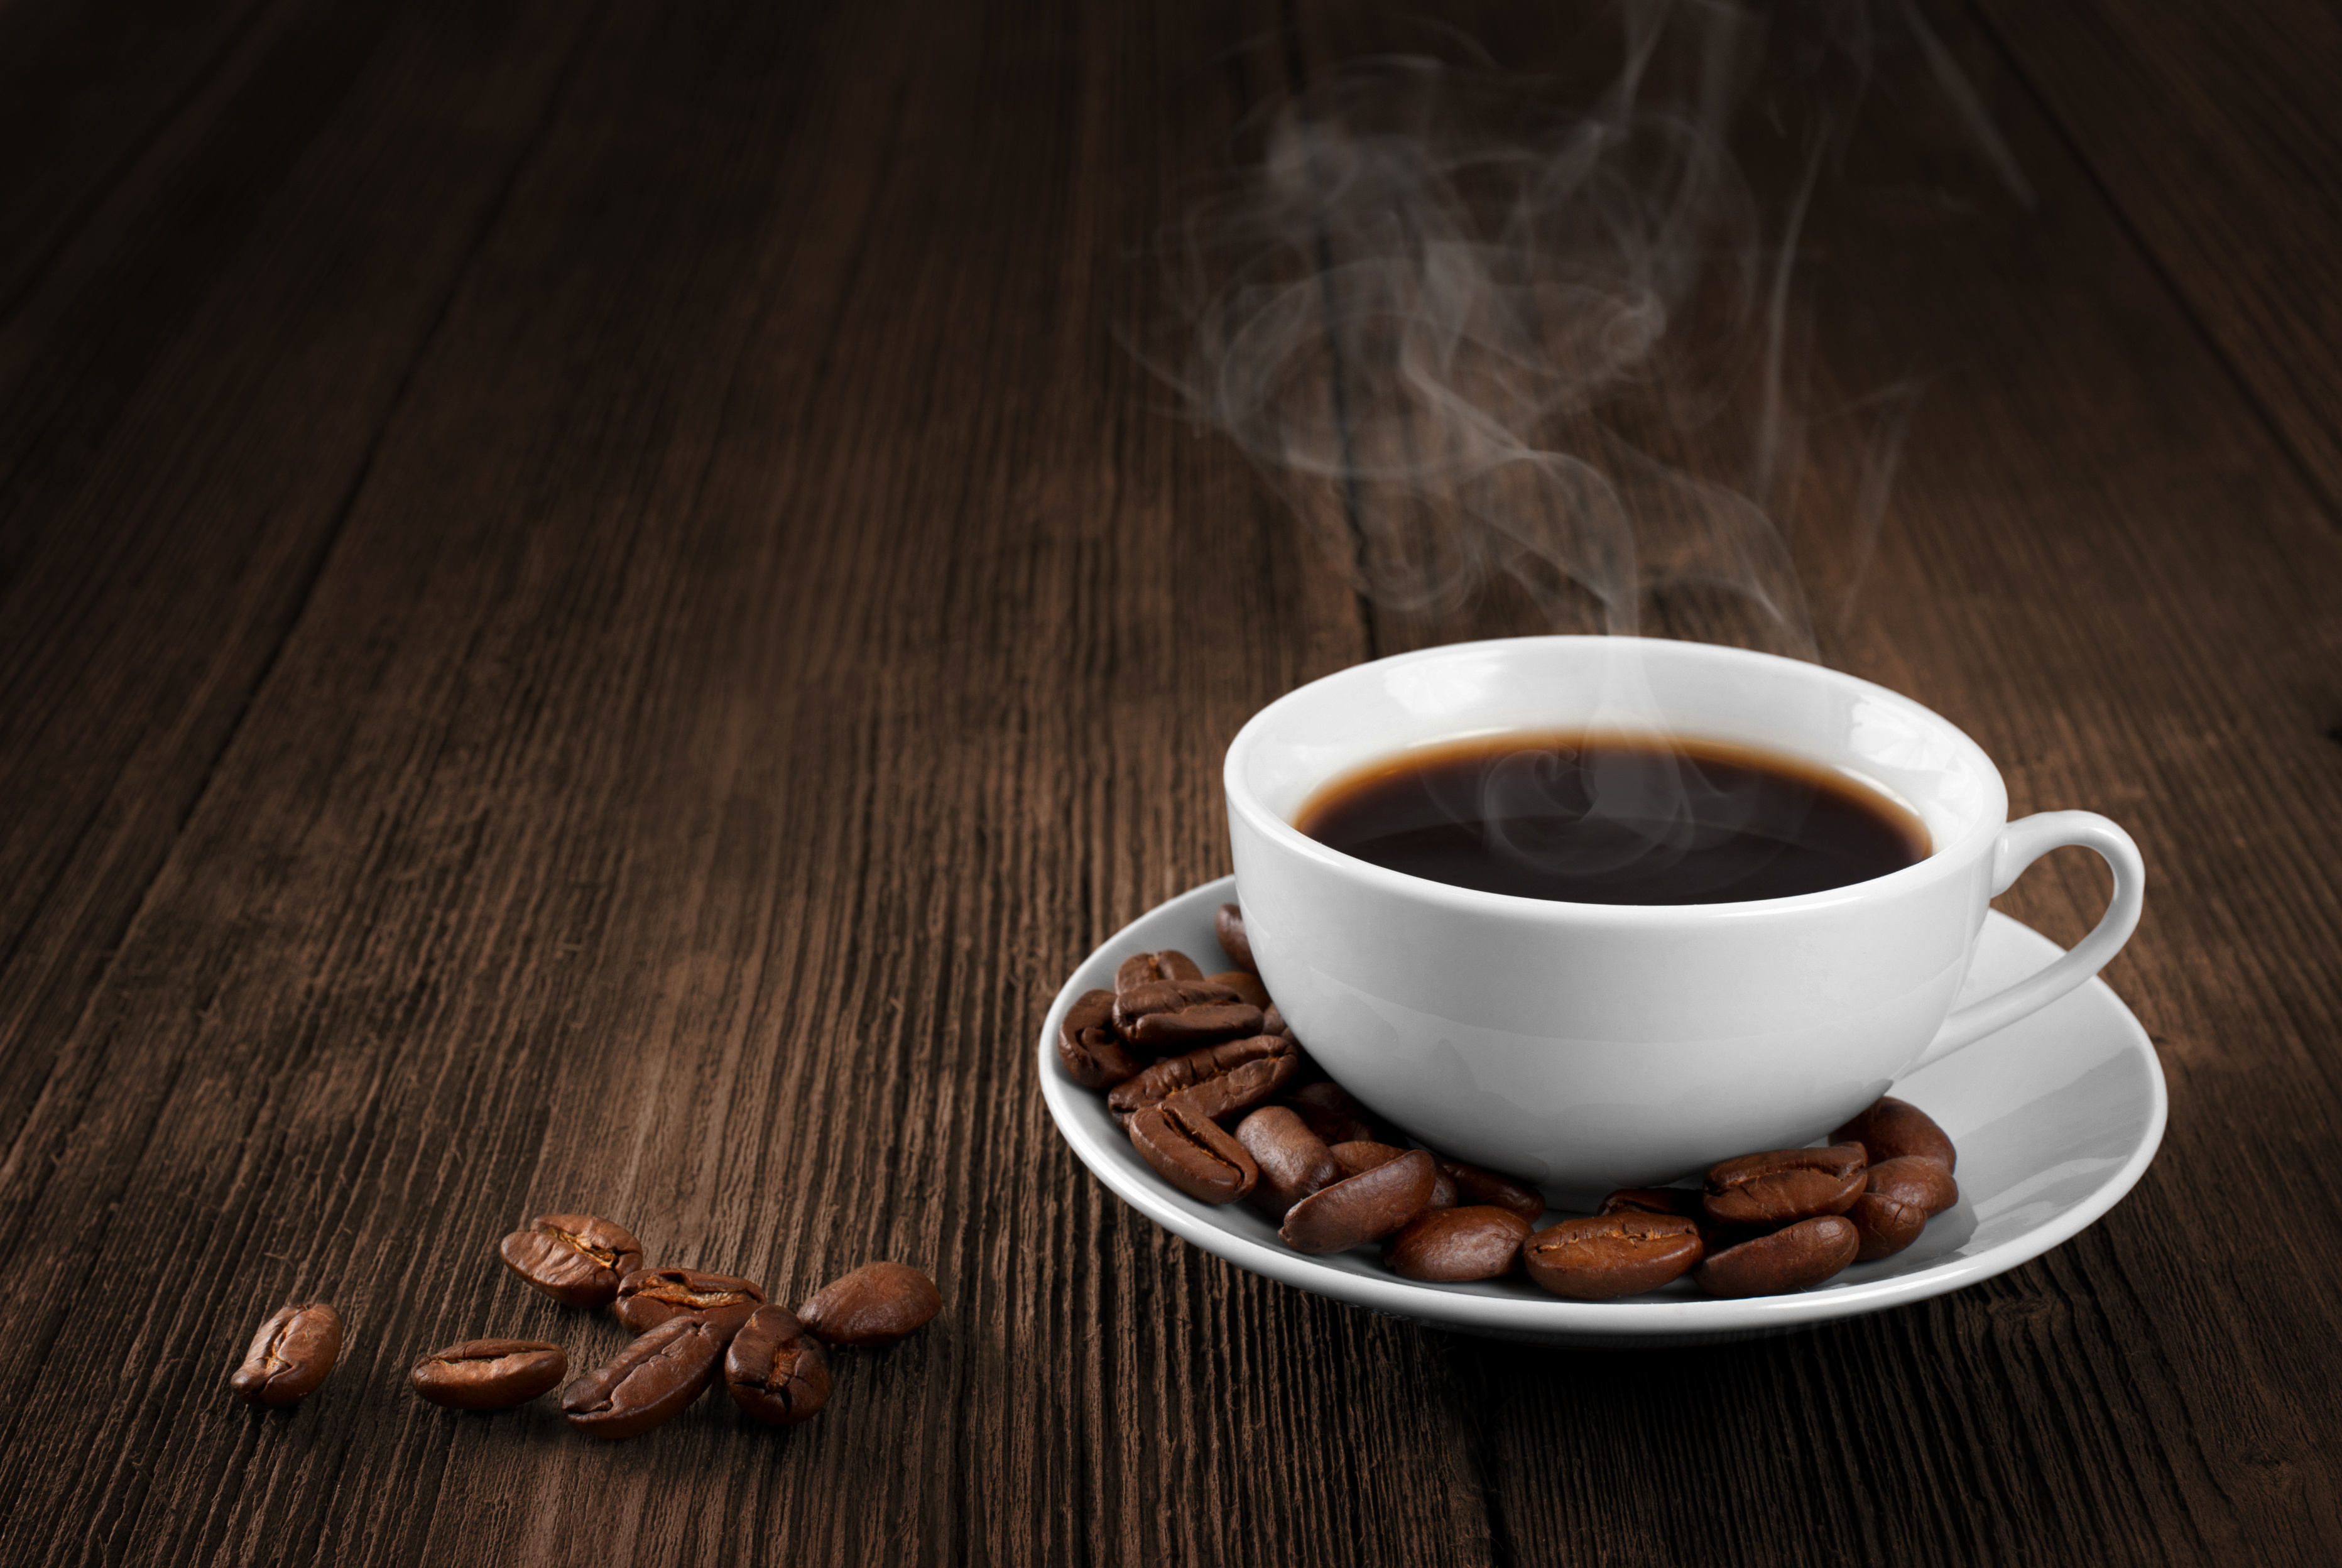 Cup of hot coffee on a wooden table. Coffee beans. Steam.